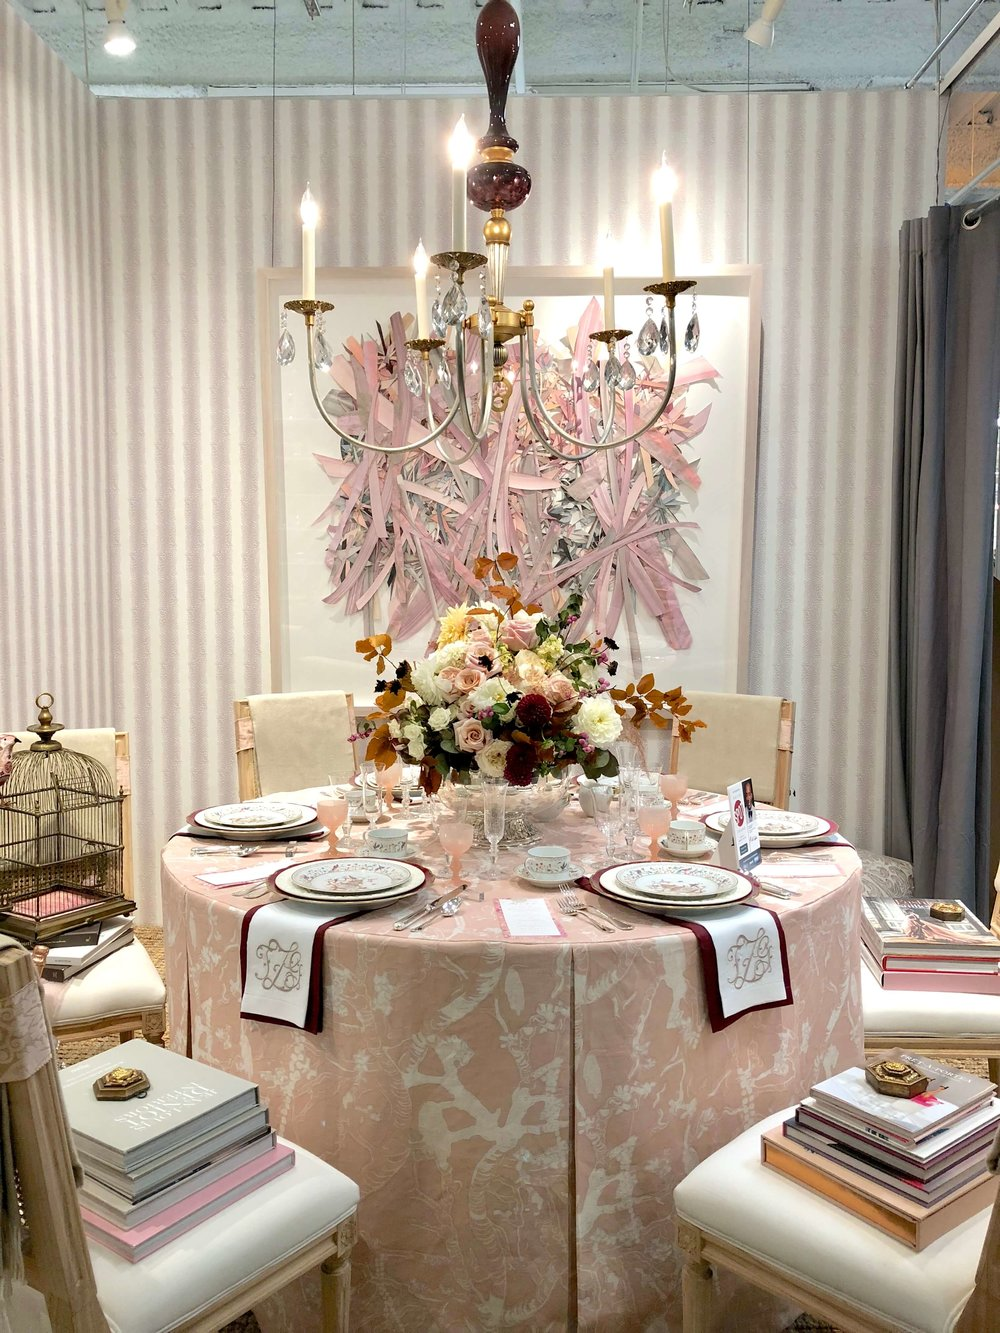 Blush pink dining tabletop designed by Traci Zeller for Replacements, Ltd, flowers by Pagoda Event Design #tabletop #blush #diningroom #diningroomideas #diningroomdecor #tablesetting #centerpiece